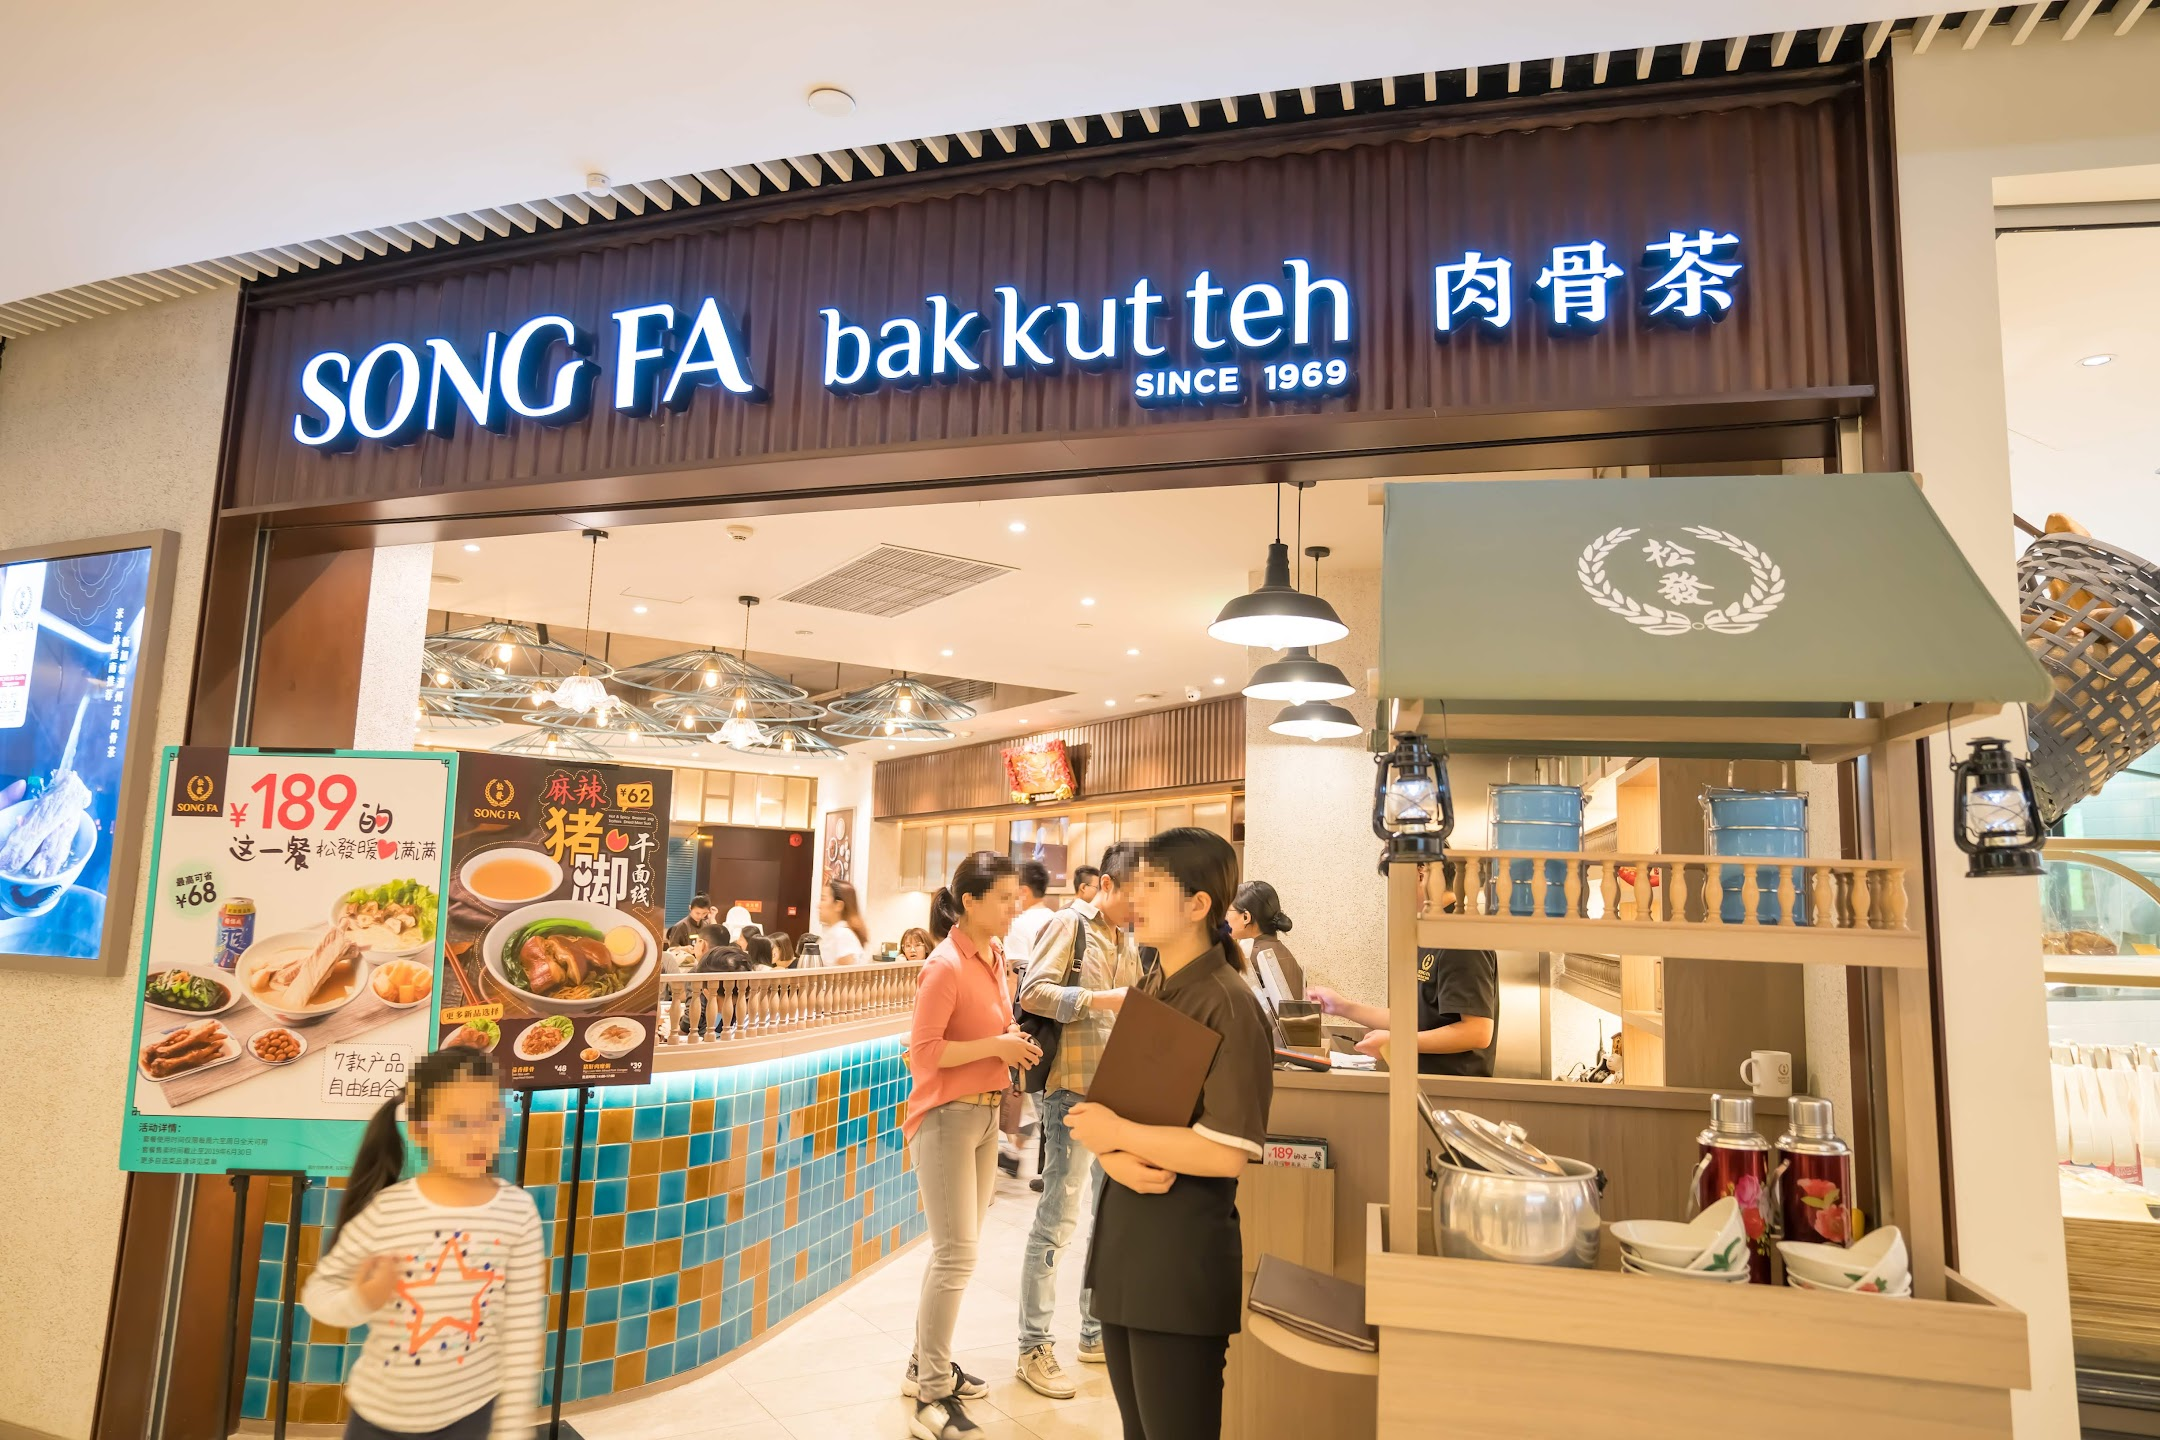 上海 Song Fa bak kut teh